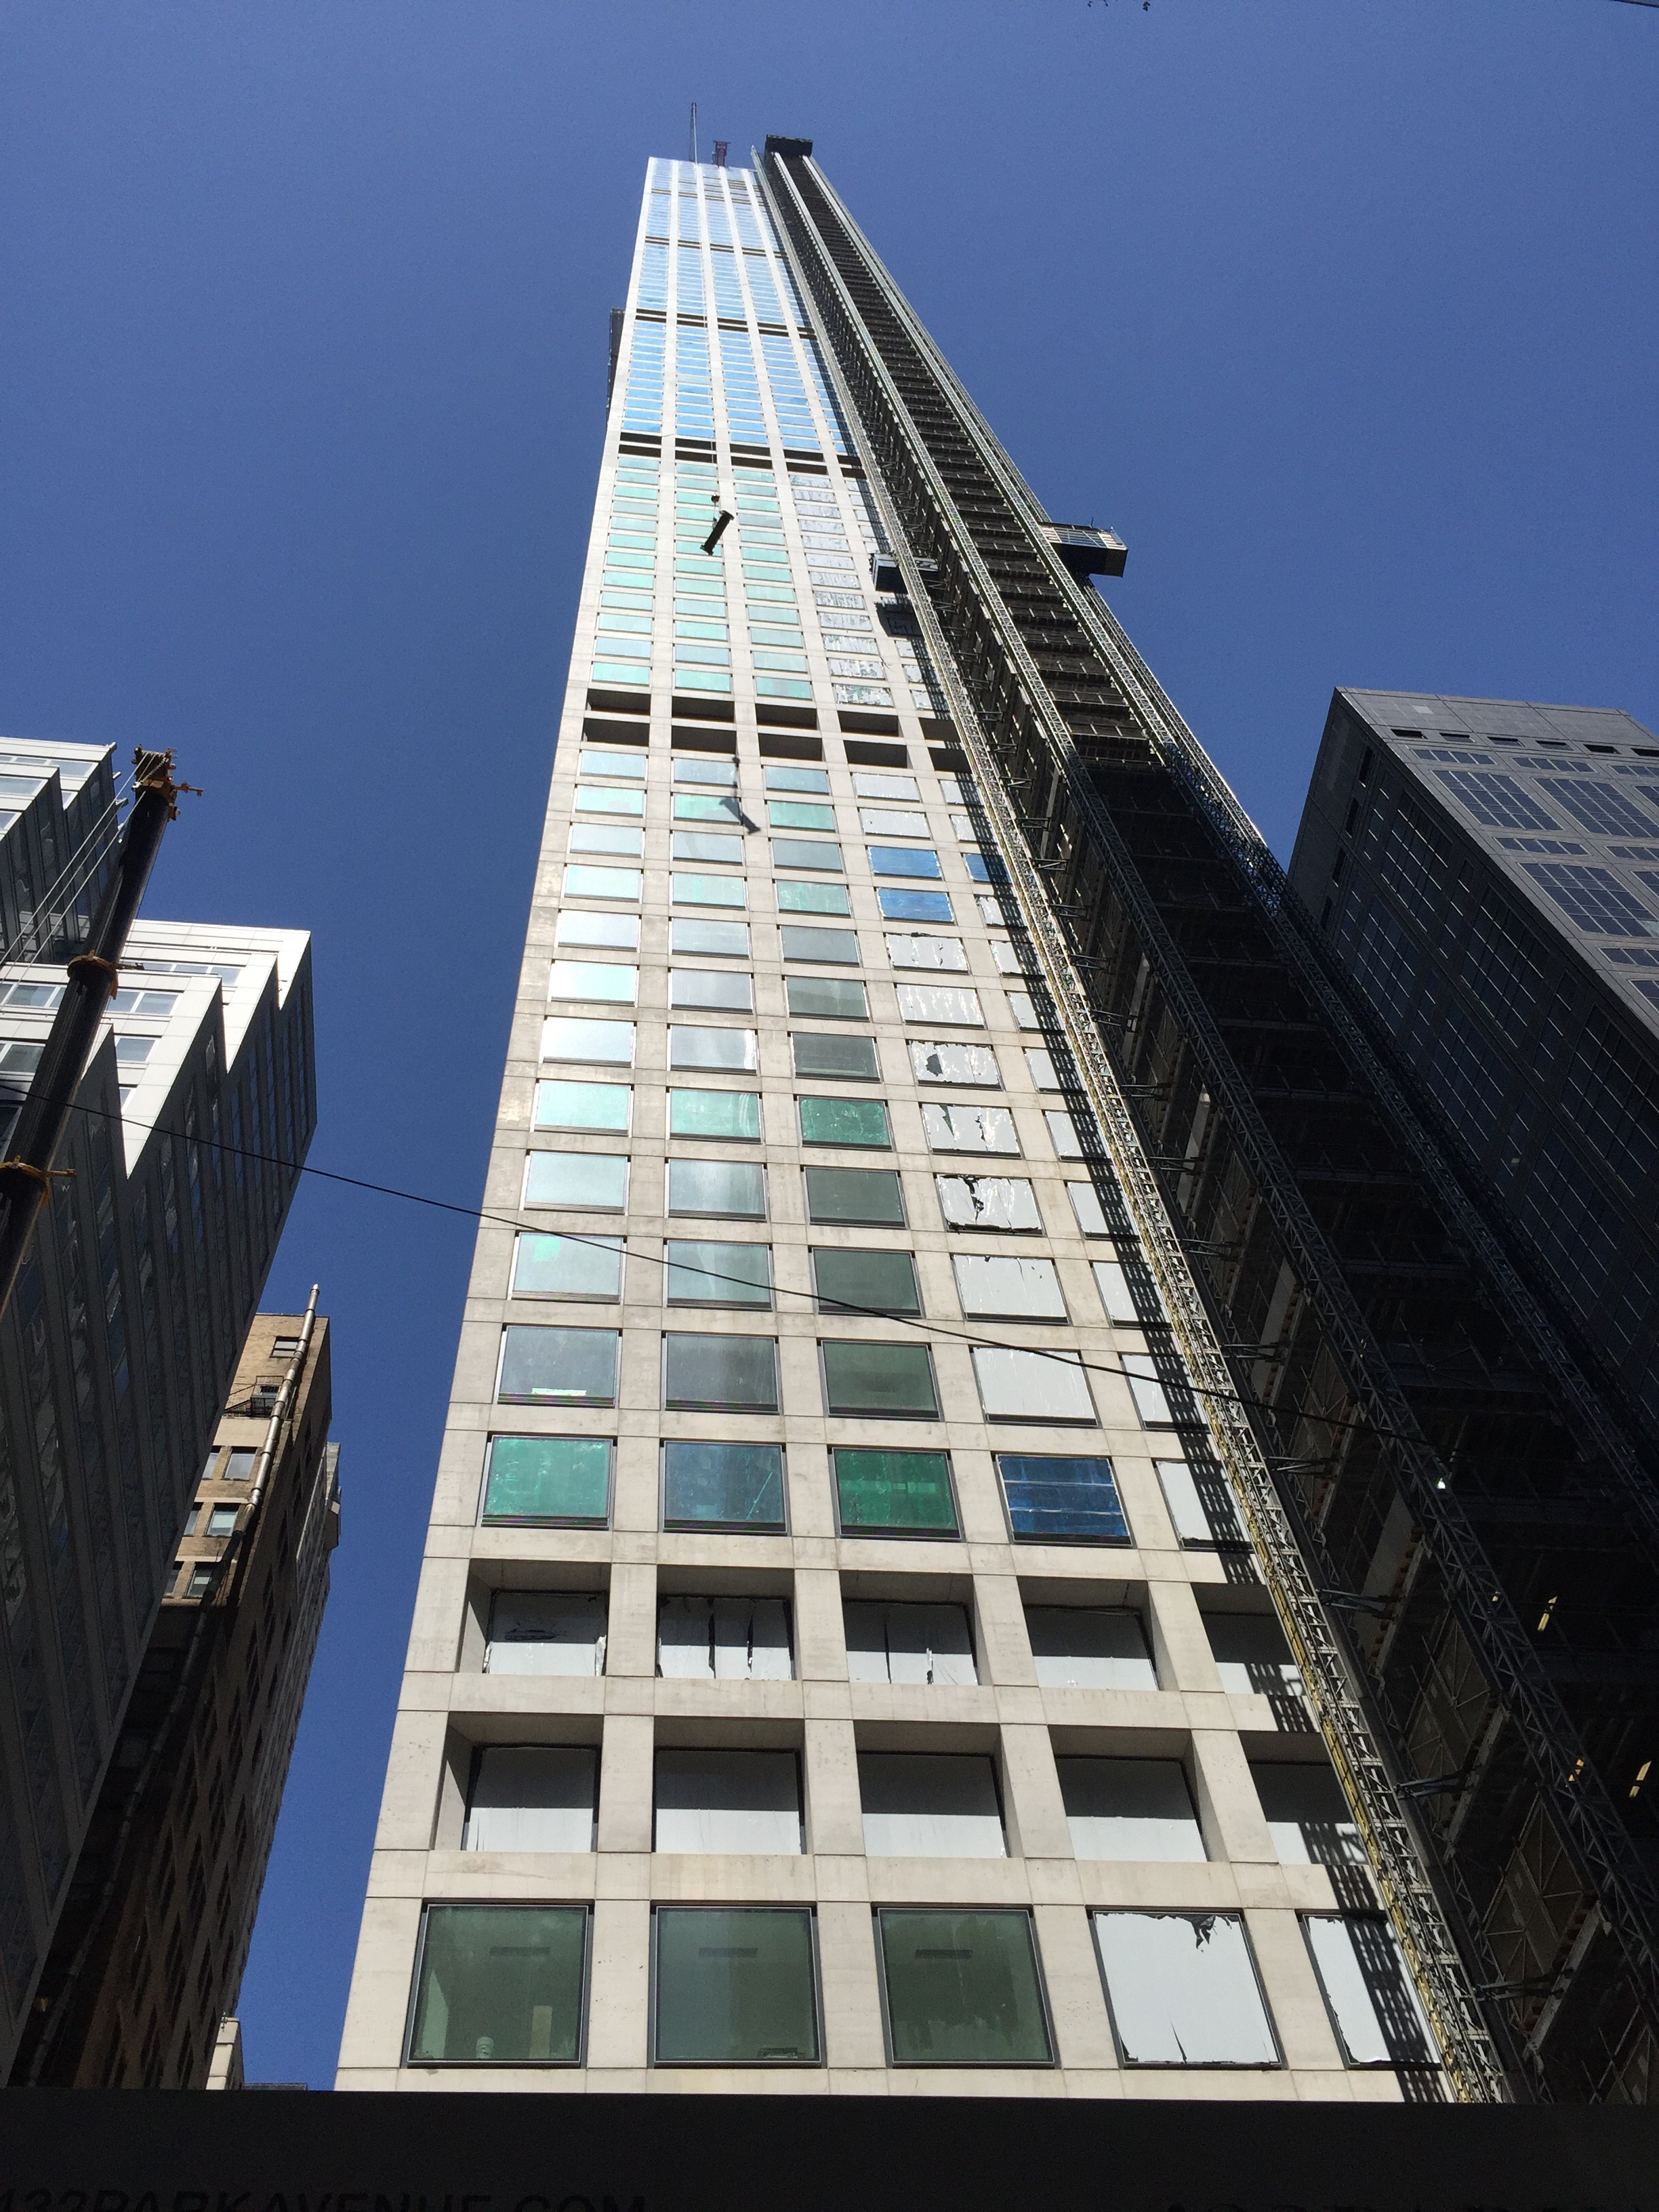 Manhattan's newest and most controversial residential tower- 432 Park Avenue